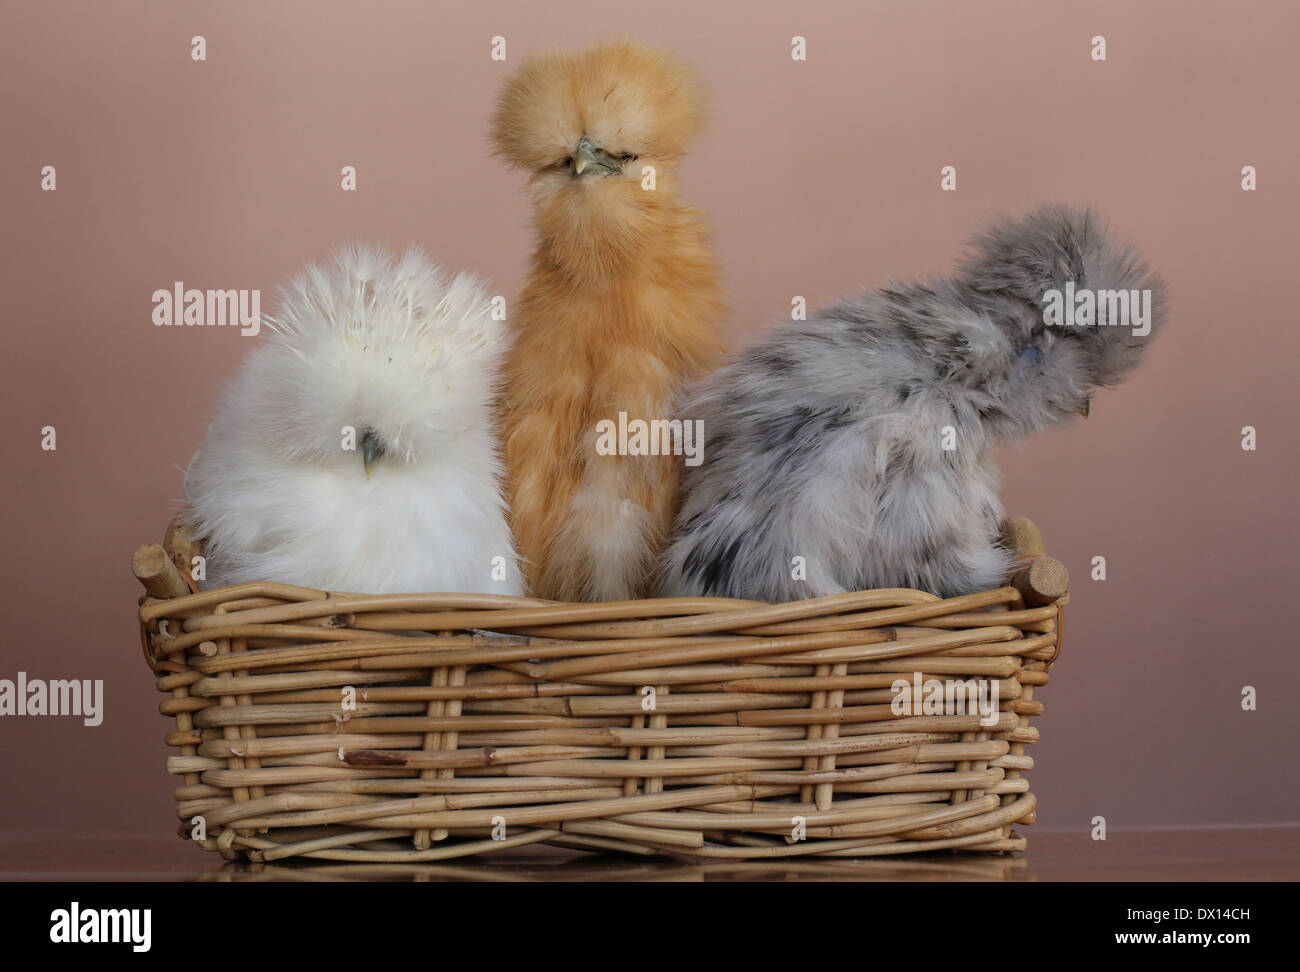 3 Silkie chickens, side by side in a basket. Stock Photo